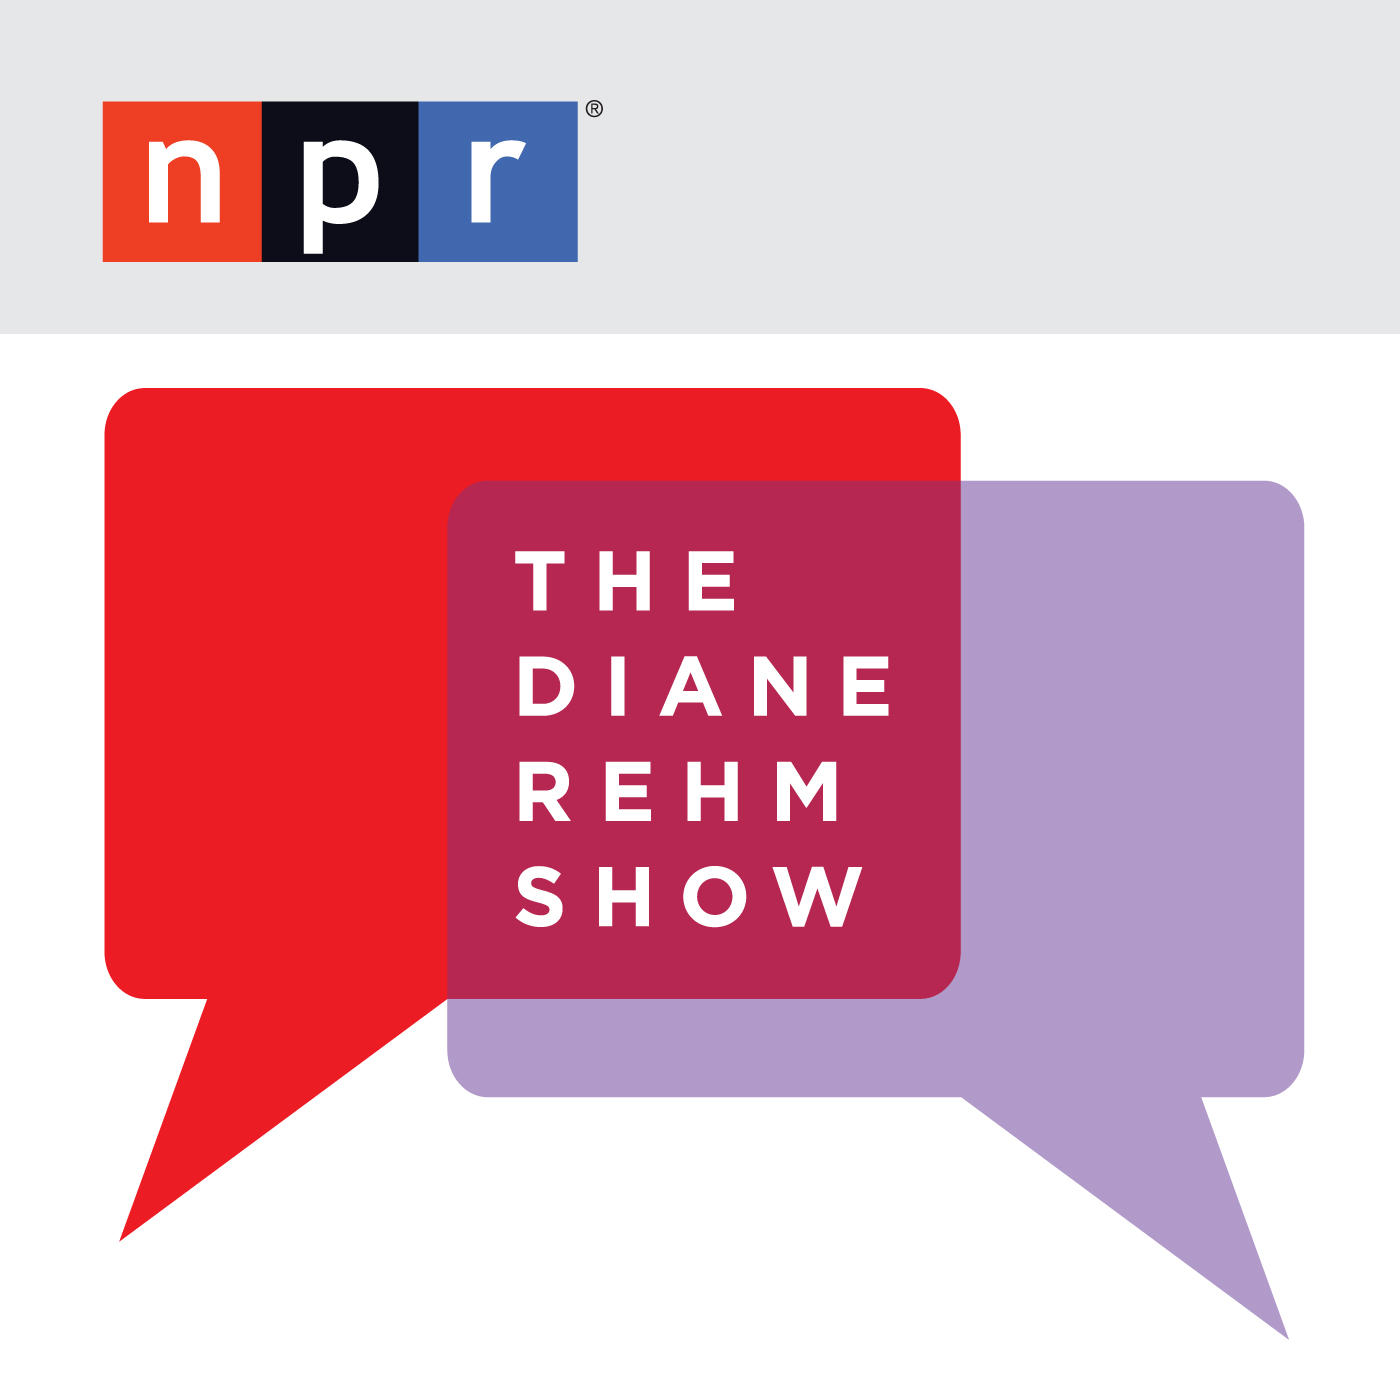 WAMU-FM: WAMU: The Diane Rehm Show Podcast